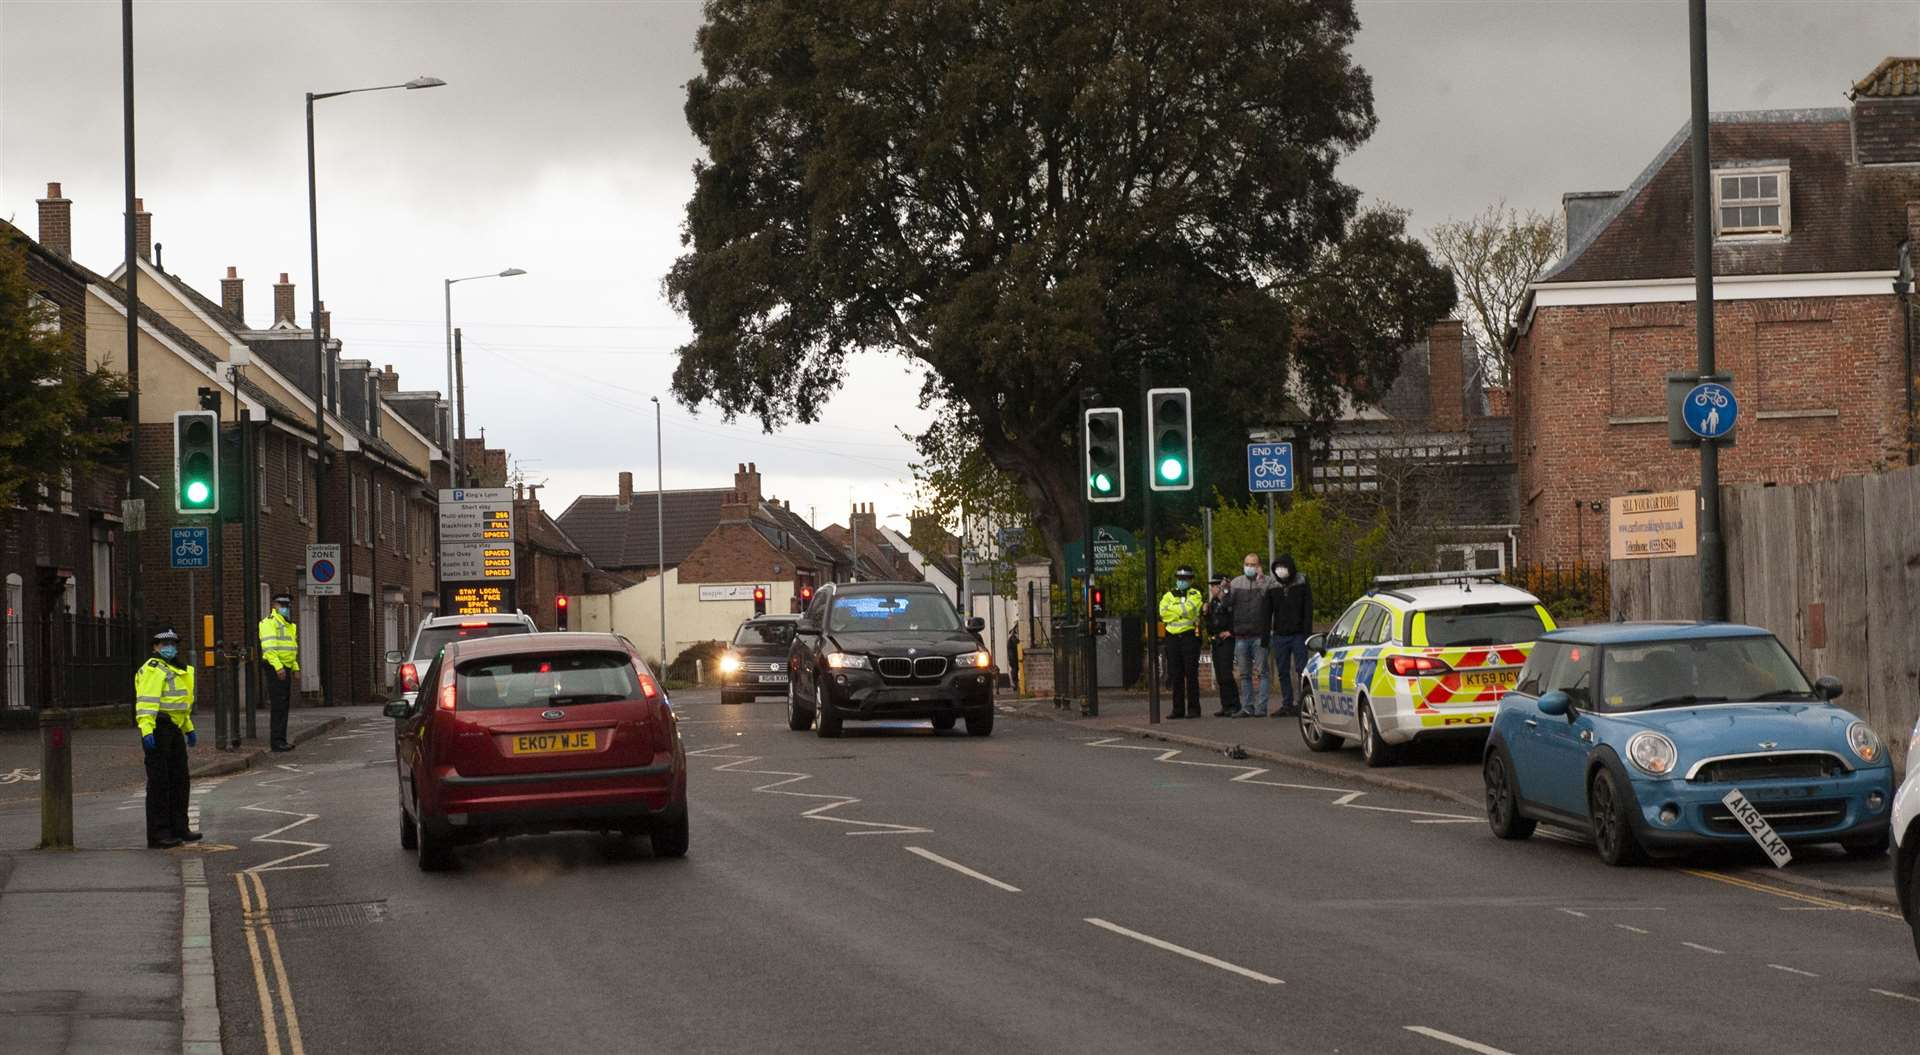 Road Traffic incident at Highgate King's Lynn Police at the scene.. (46841307)